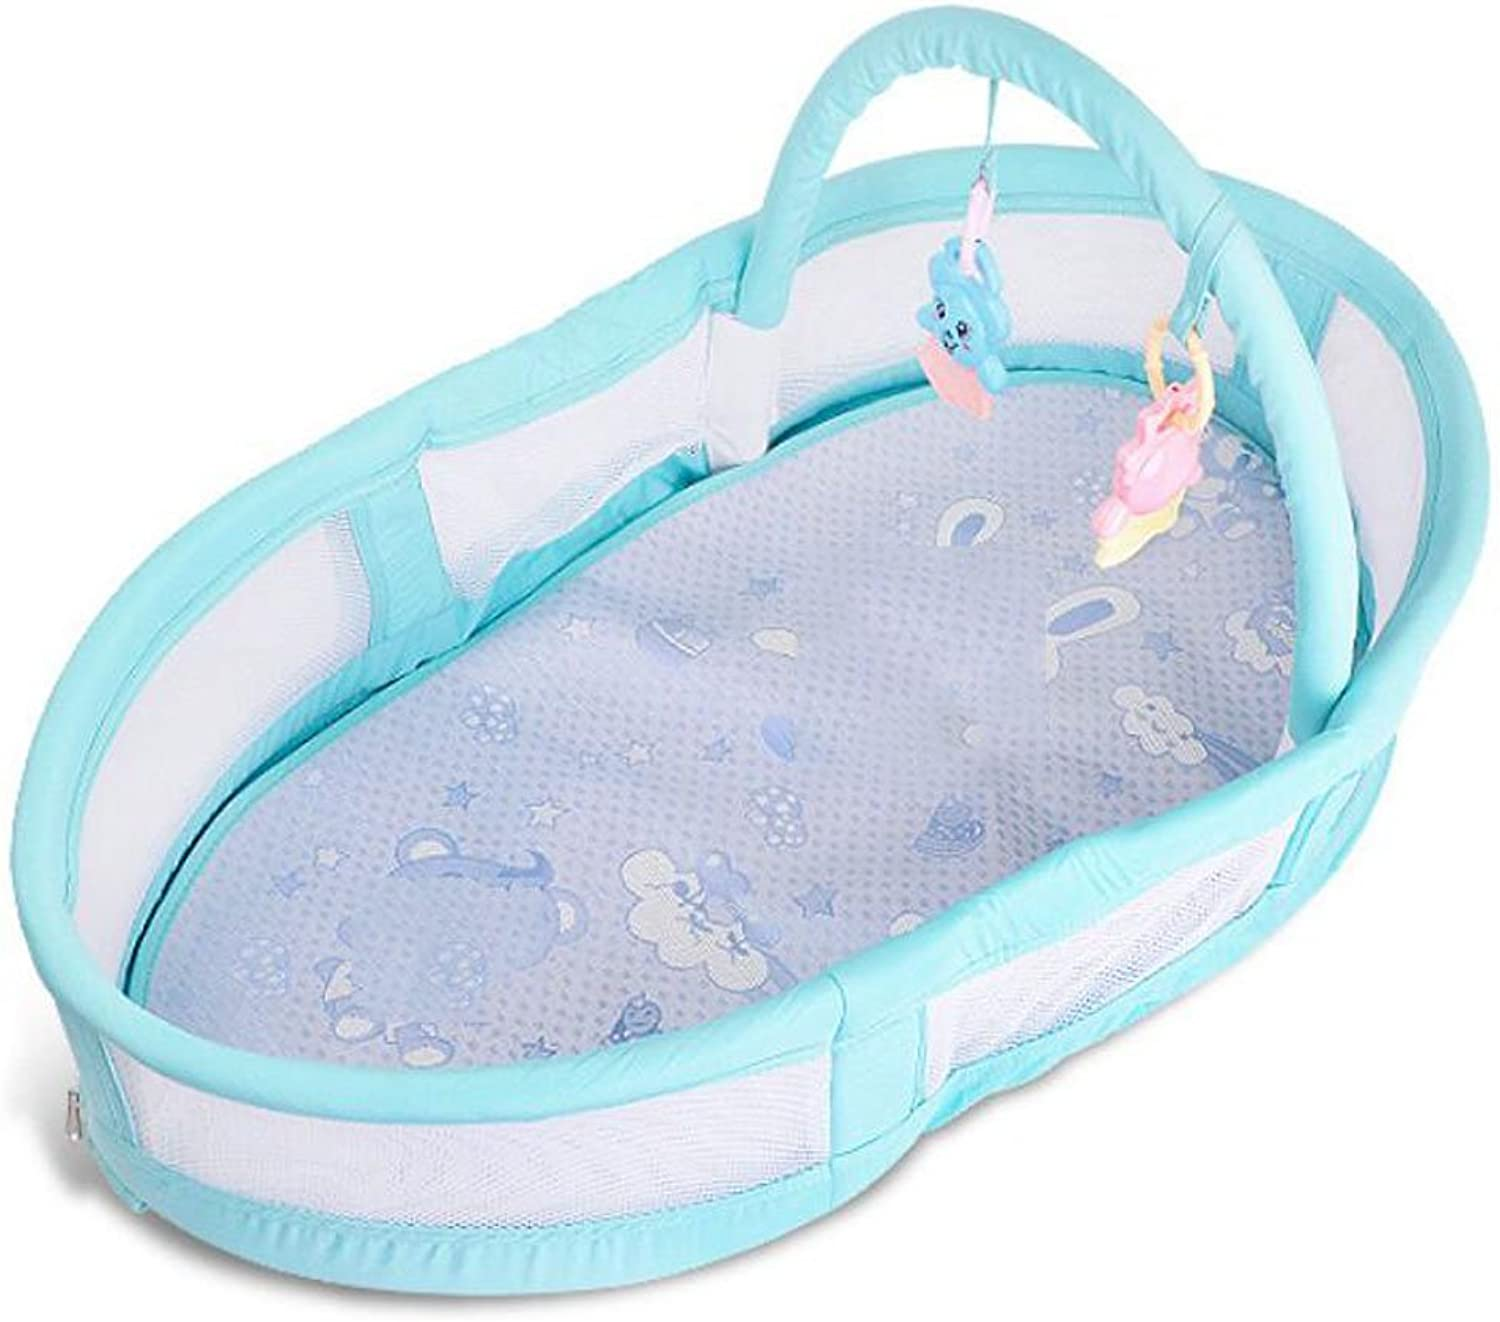 Newborn Crib Multifunction Portable Bedding Gift Box Crib Foldable for 1-12 Months Baby bluee (color   blueE)